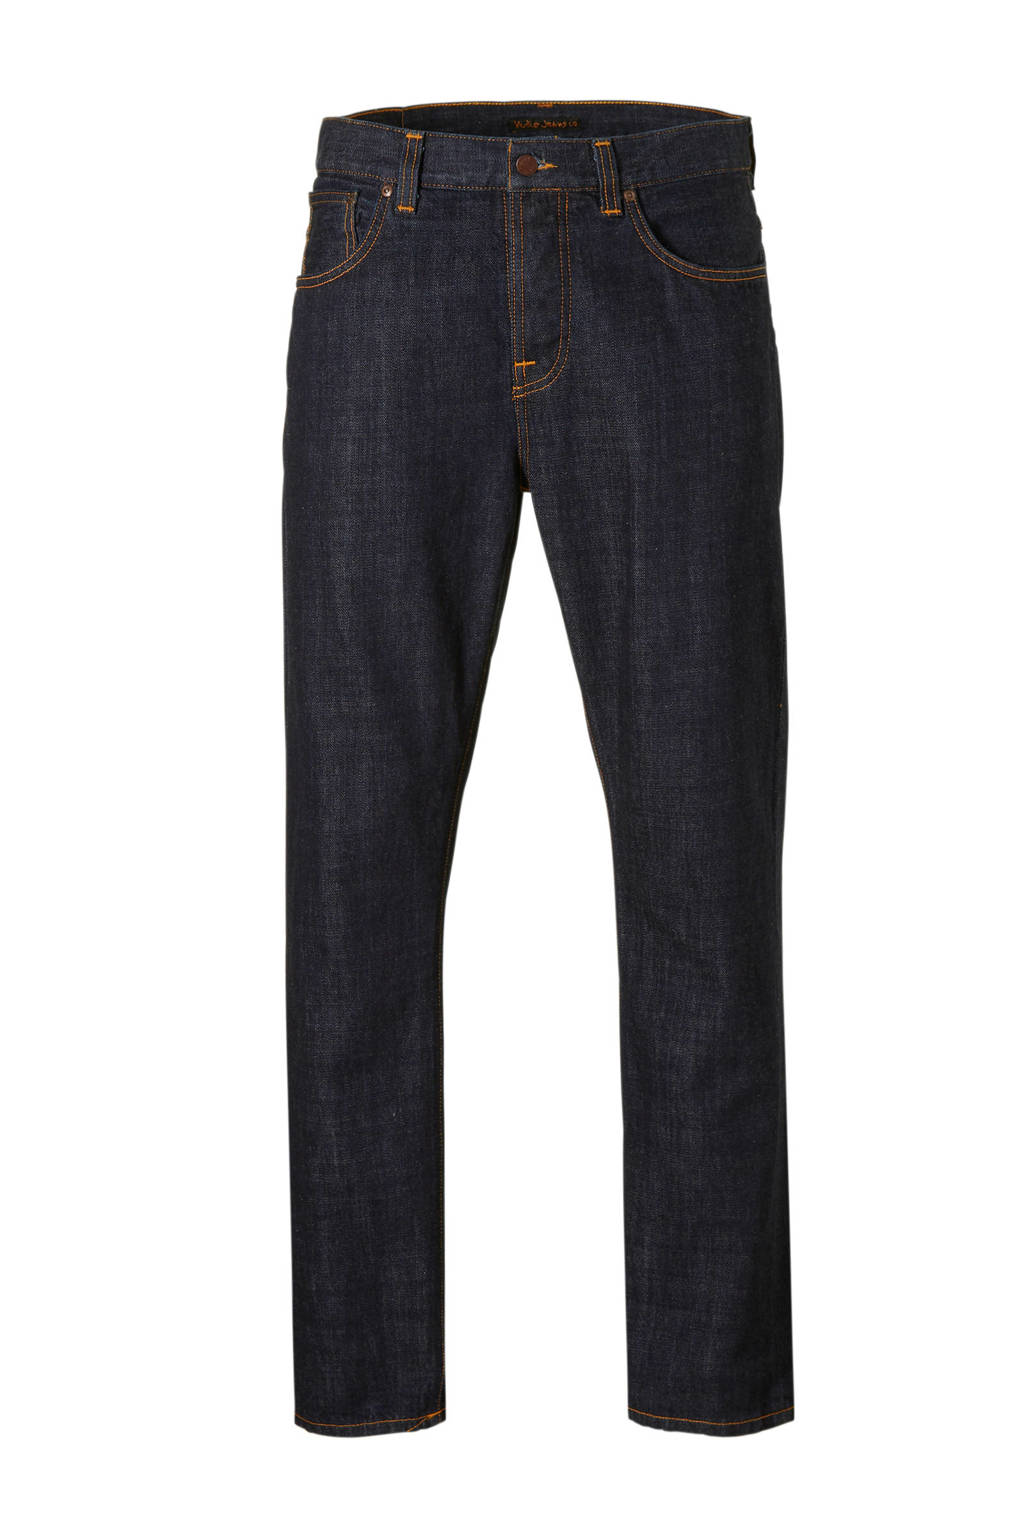 Nudie Jeans  regular Sleepy Sixten regular fit jeans, Dark denim